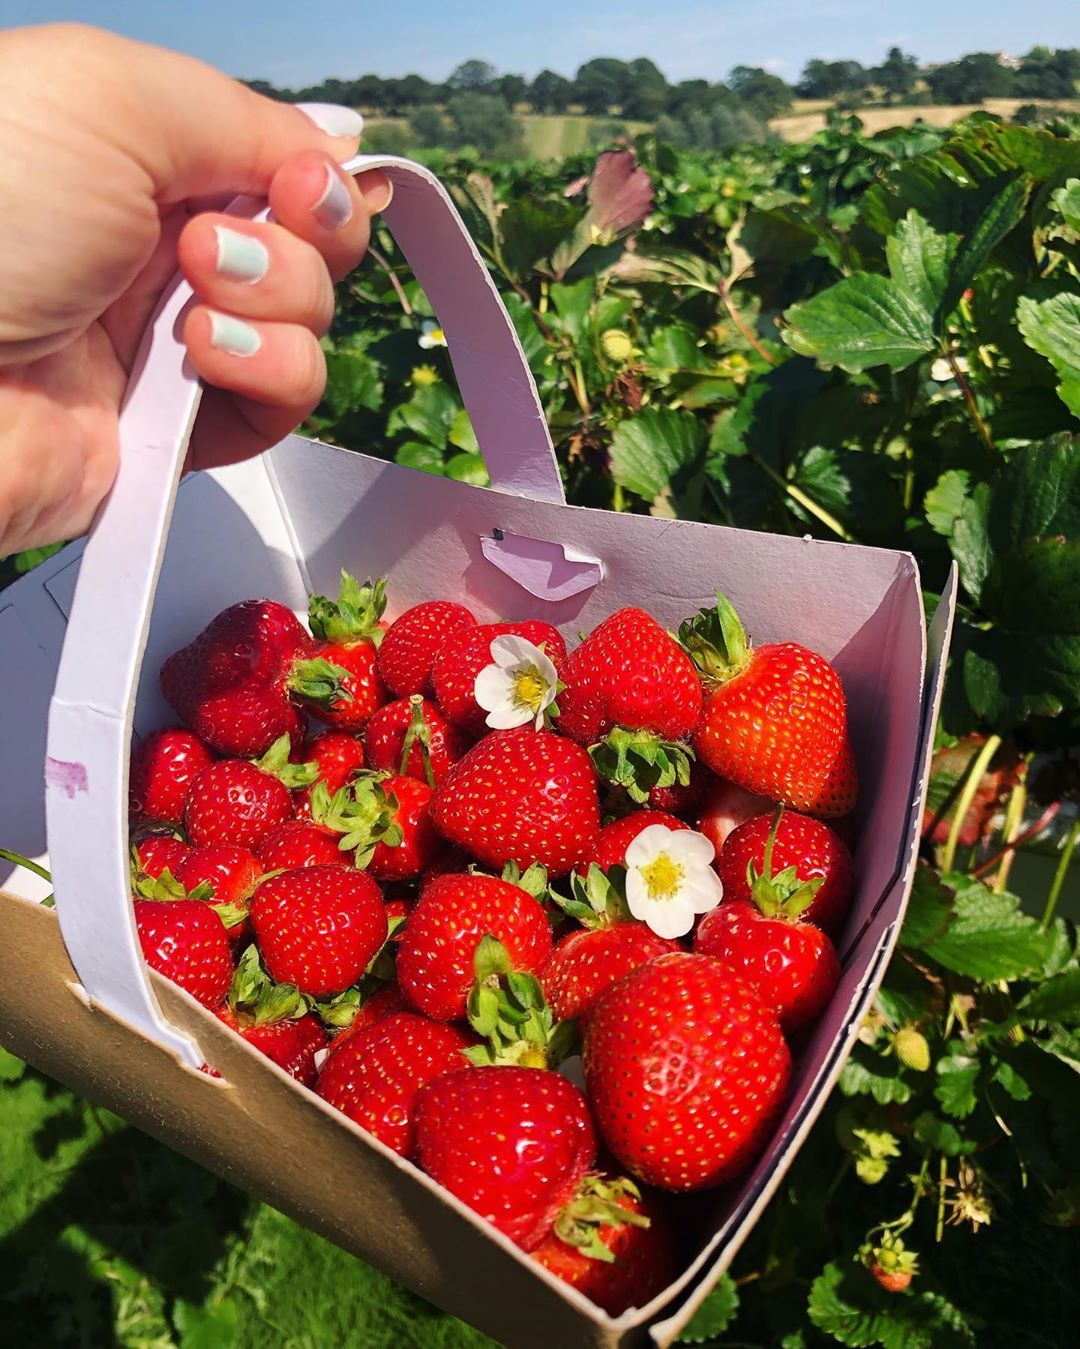 Strawberry picking season 🍓  What is everybody up to today? ☺️